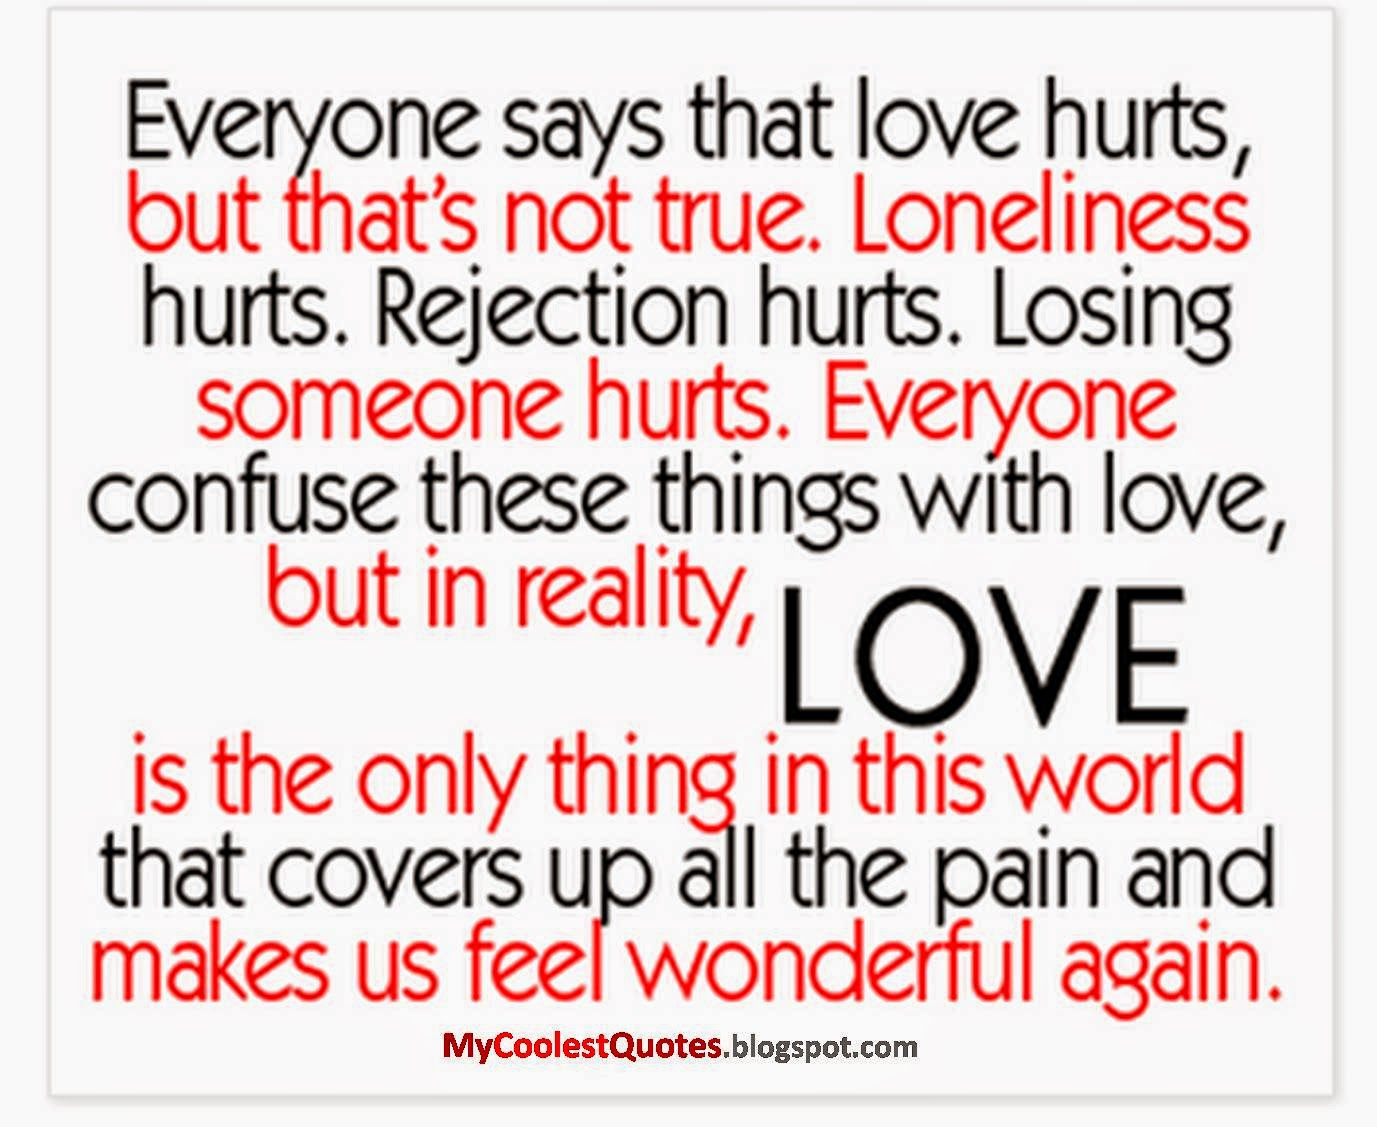 Love Quotes Pain Hurt: Best Quotes For Everyday: Coolest Quotes Does Love Really Hurt